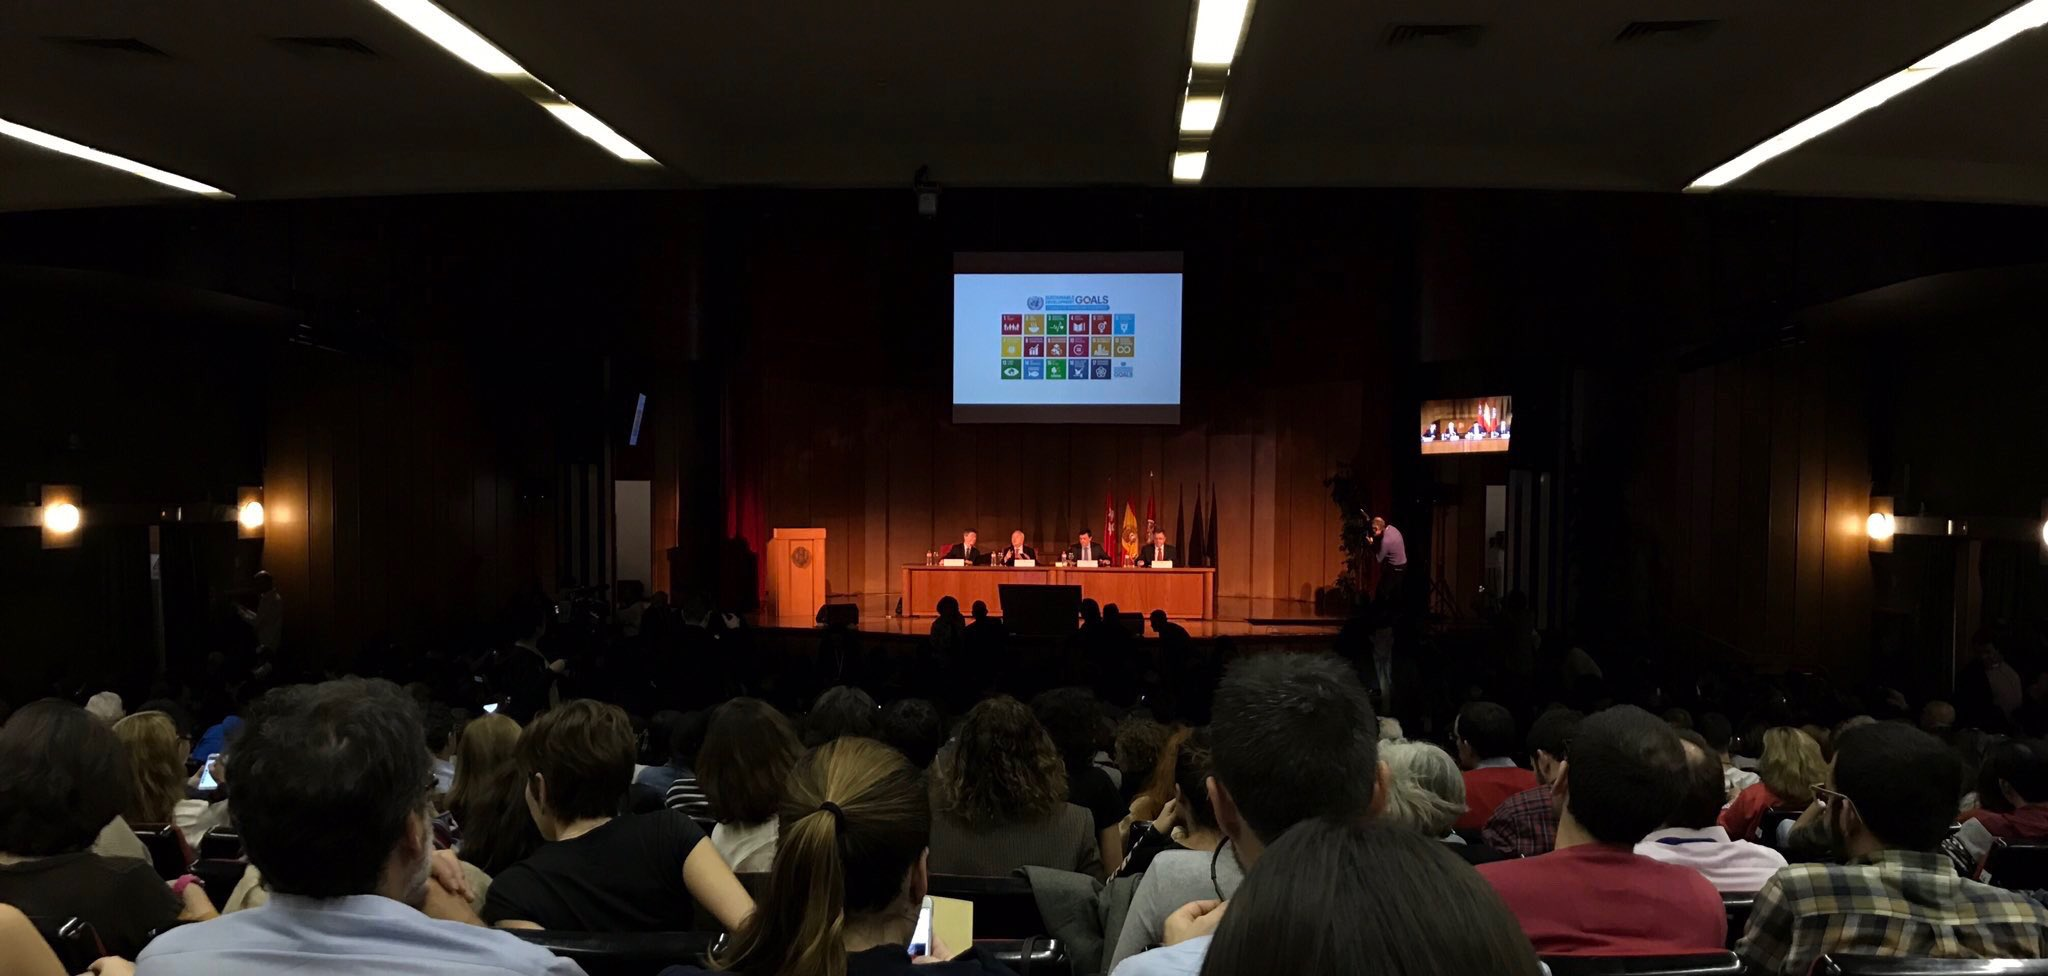 Lleno total en la conferencia de @JeffDSachs  #ODSuniversidad #agenda2030 https://t.co/MK0rb890QD